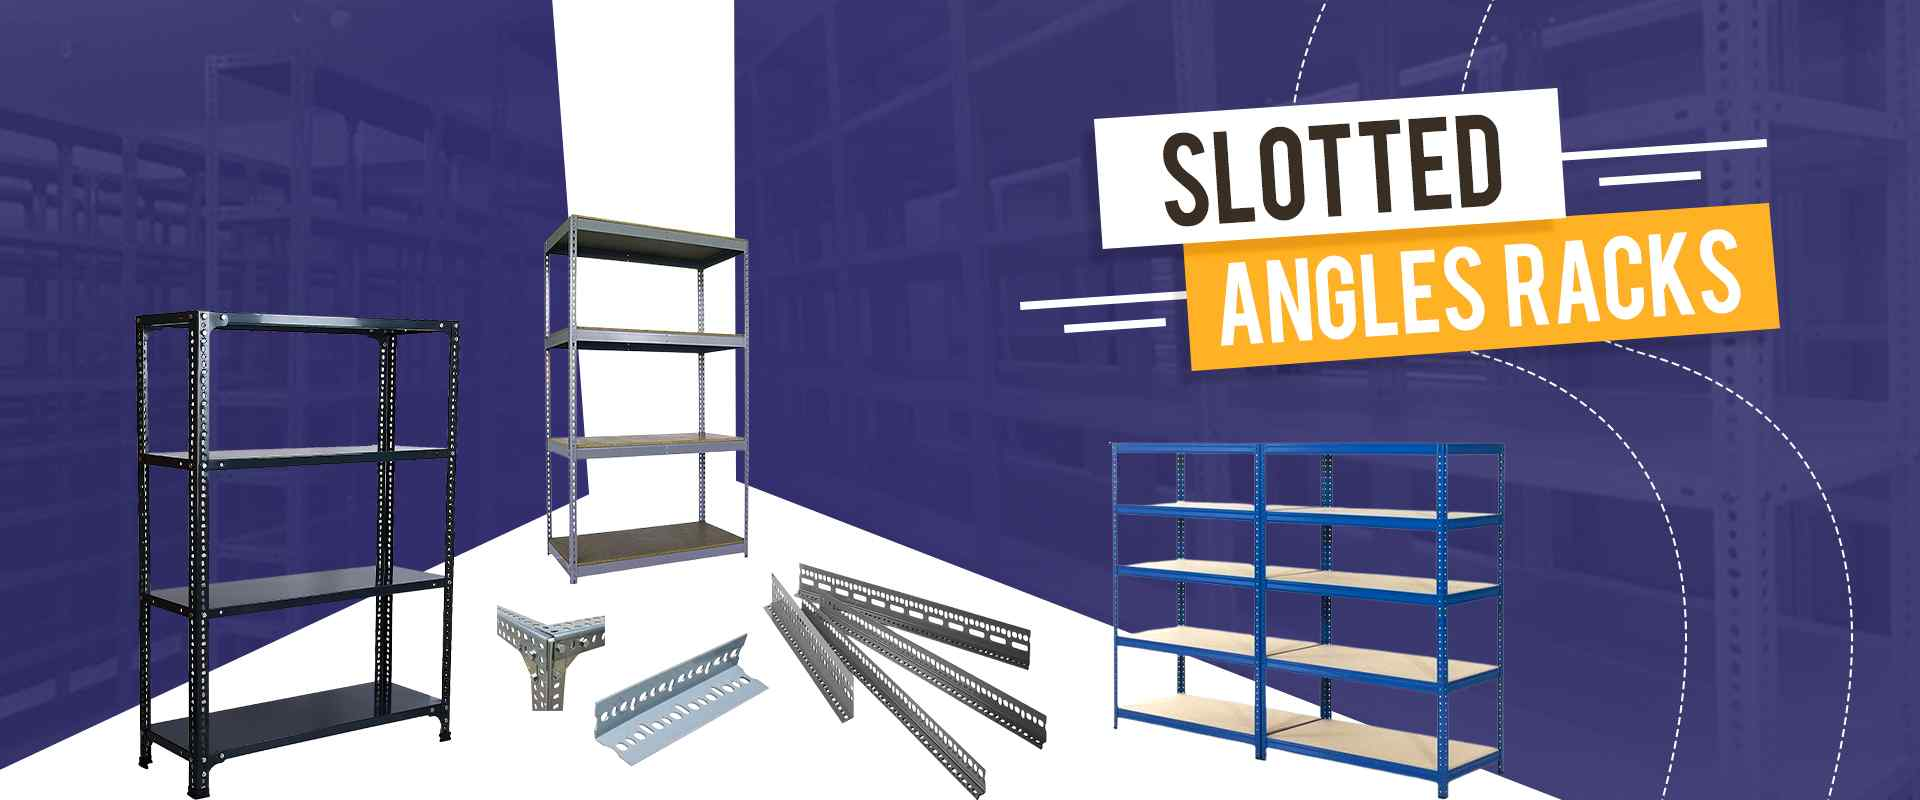 Slotted Angles Racks In Vadodara